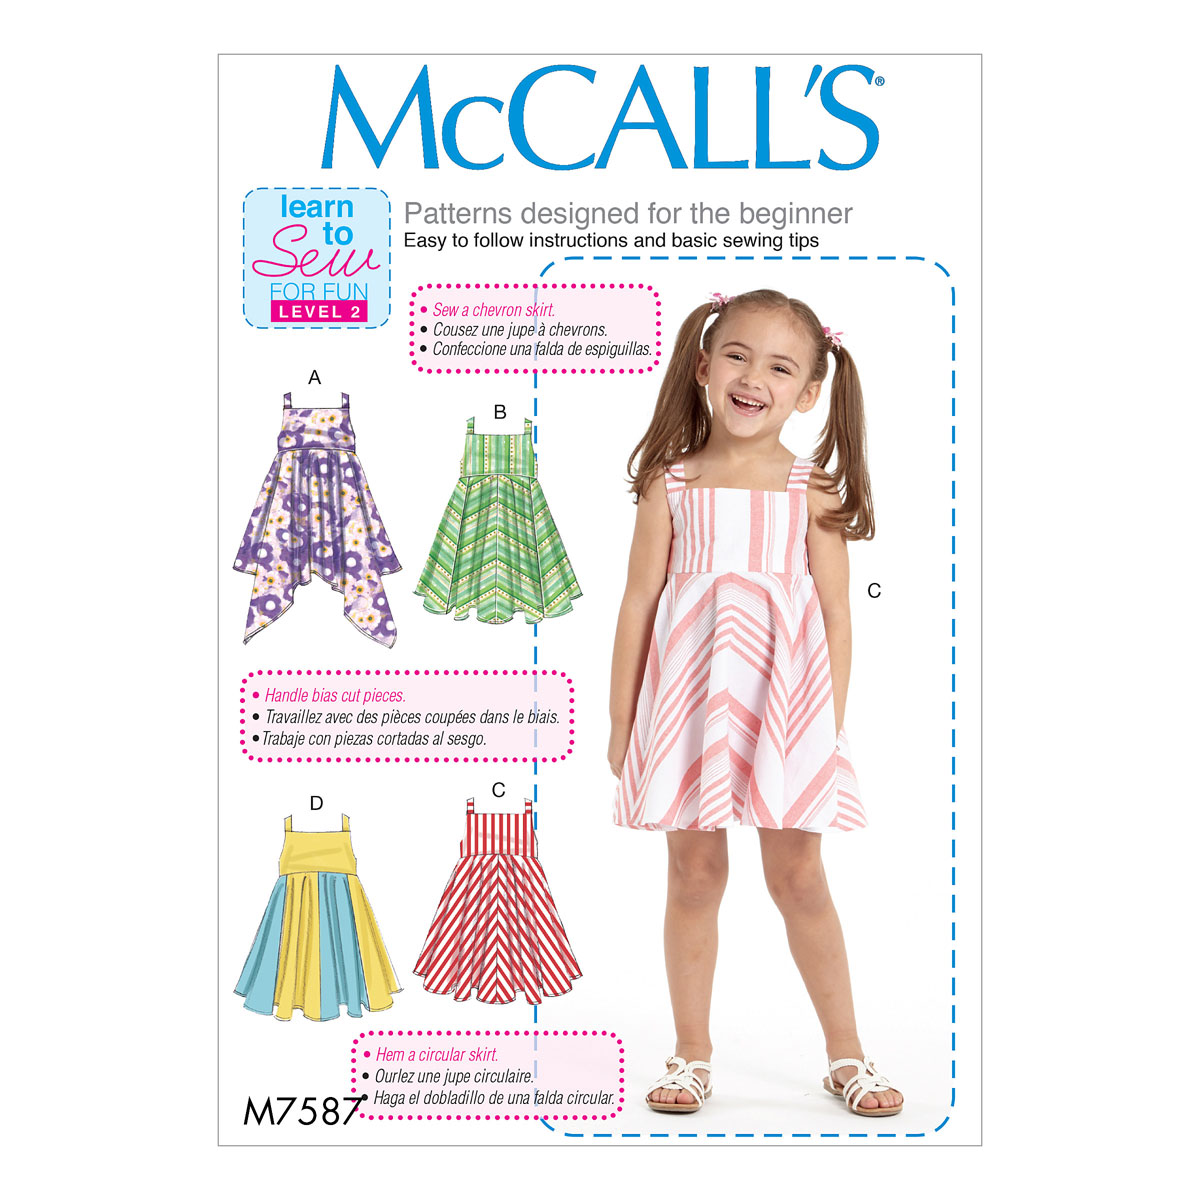 McCalls Sewing Pattern M7587 | Childrens/Girls Dresses with ...